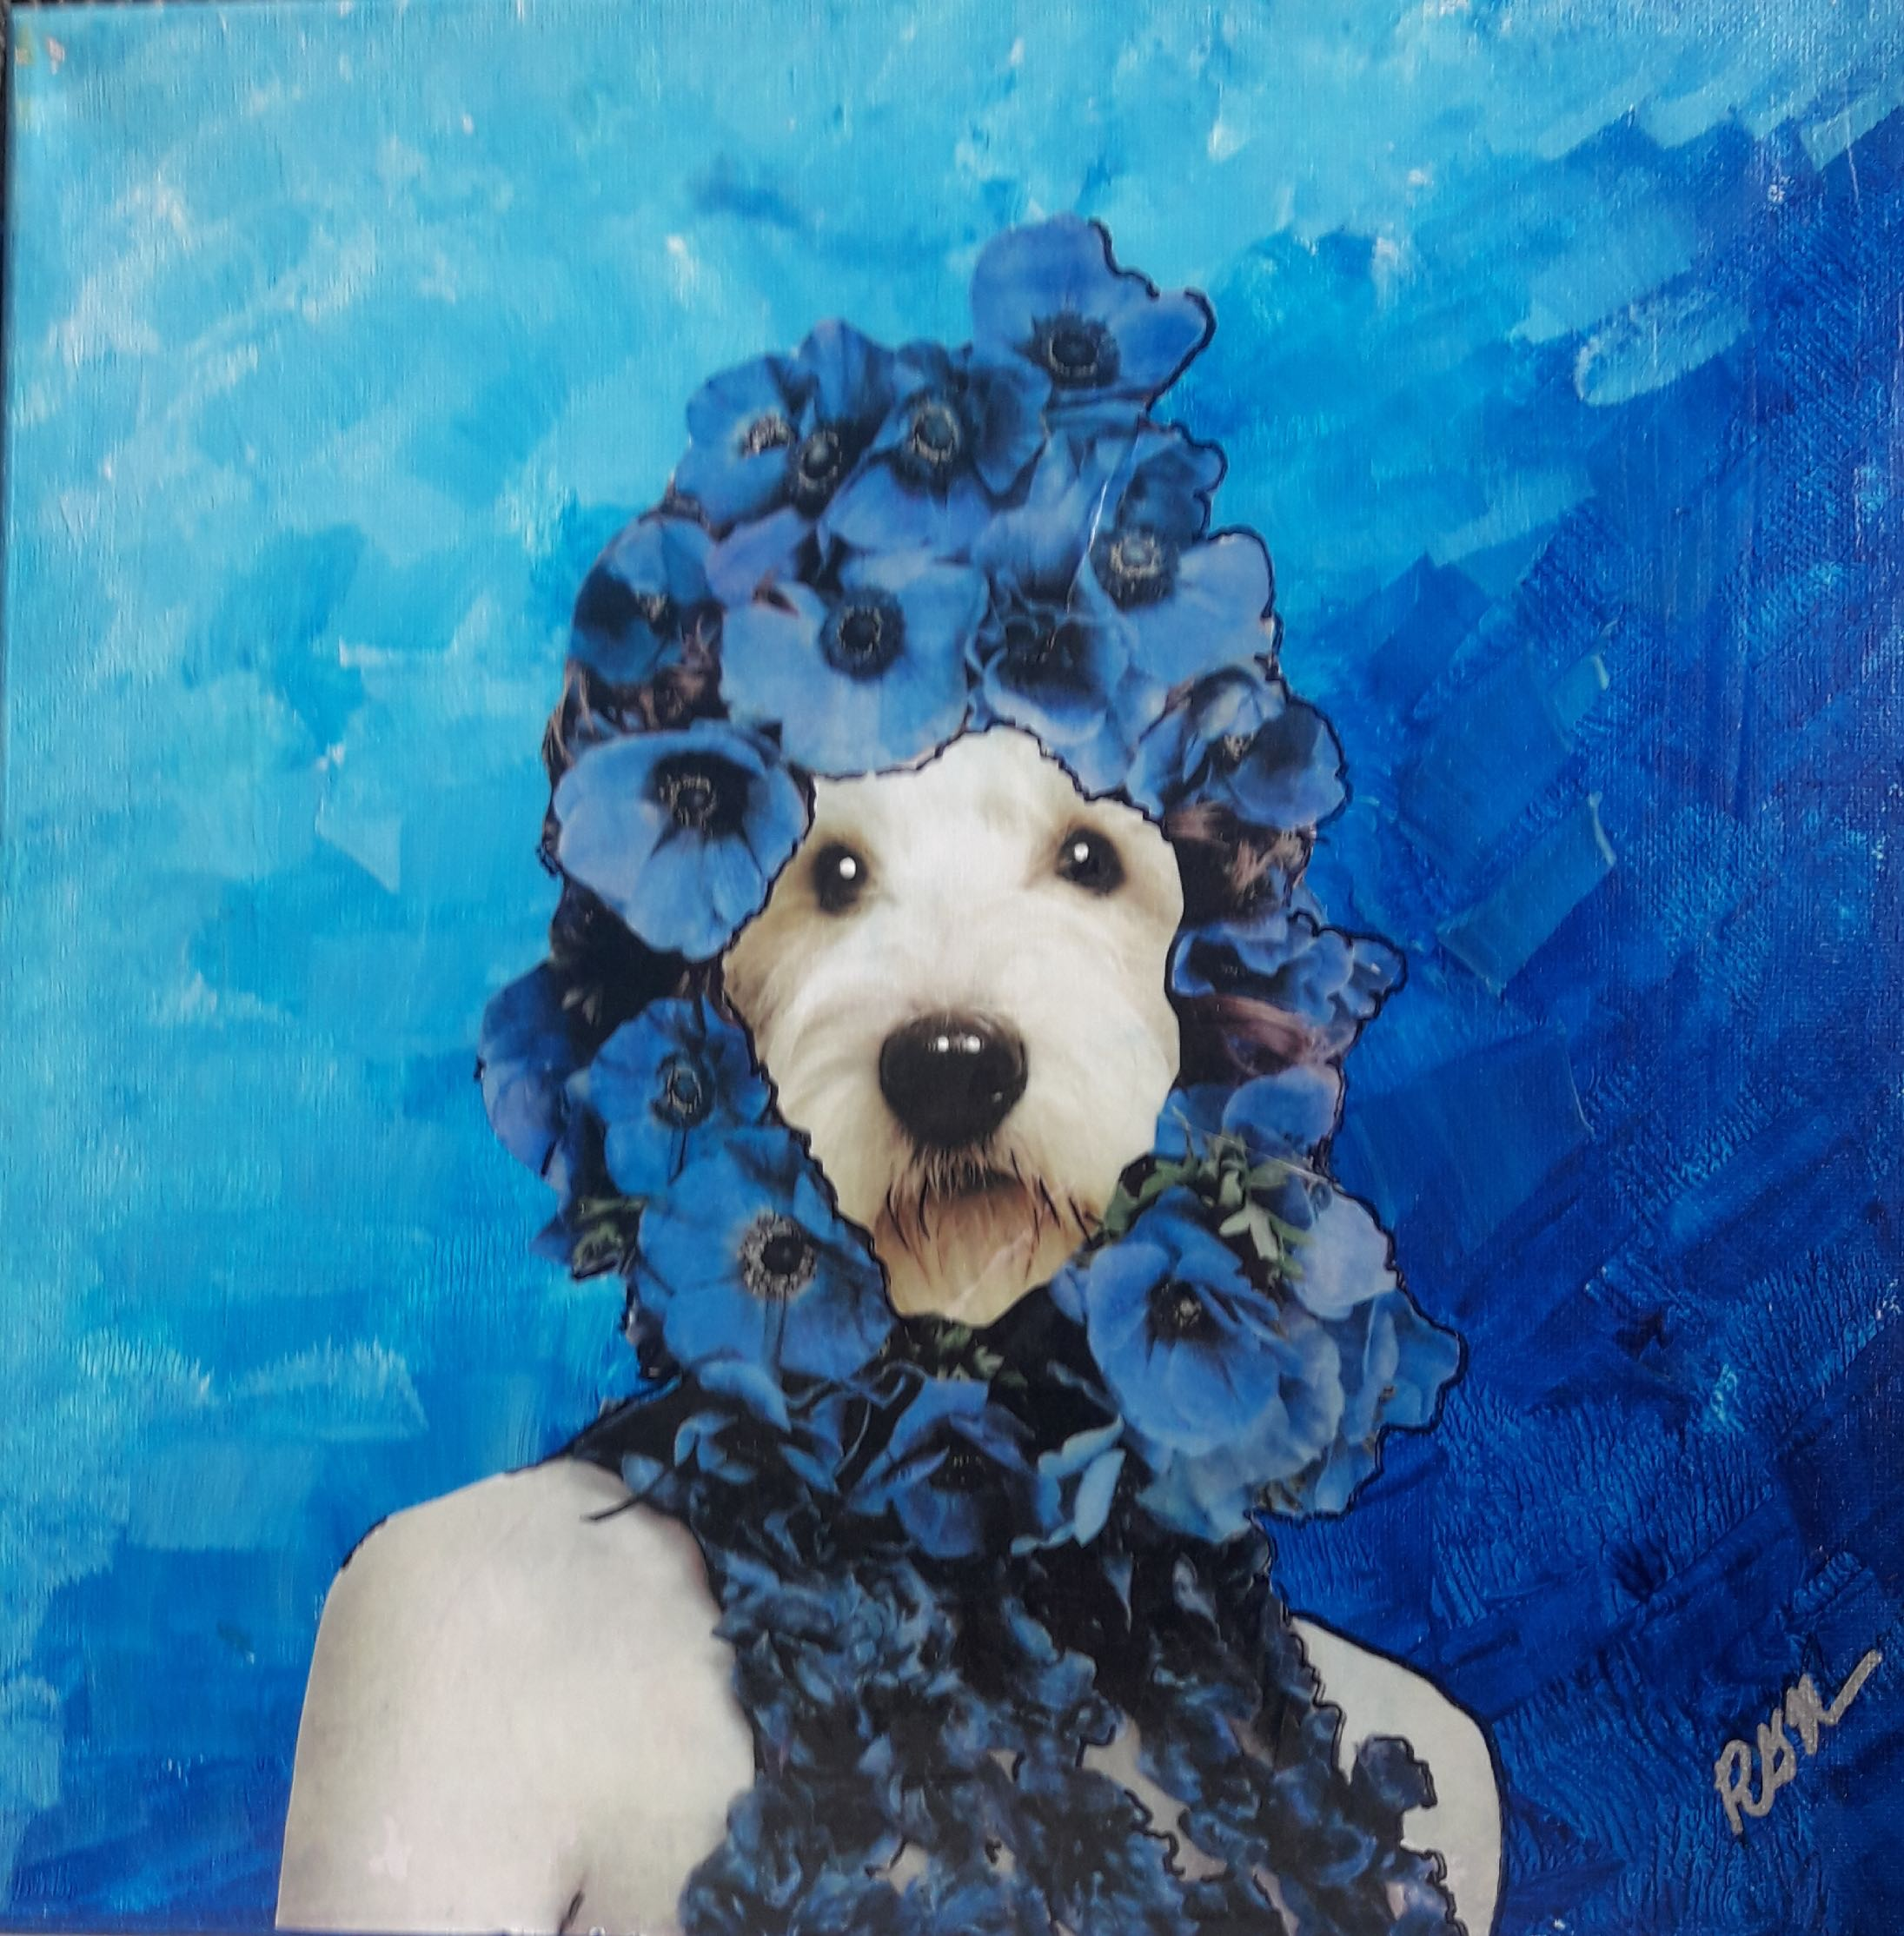 Blue Belle - golden doodle with blue flowers